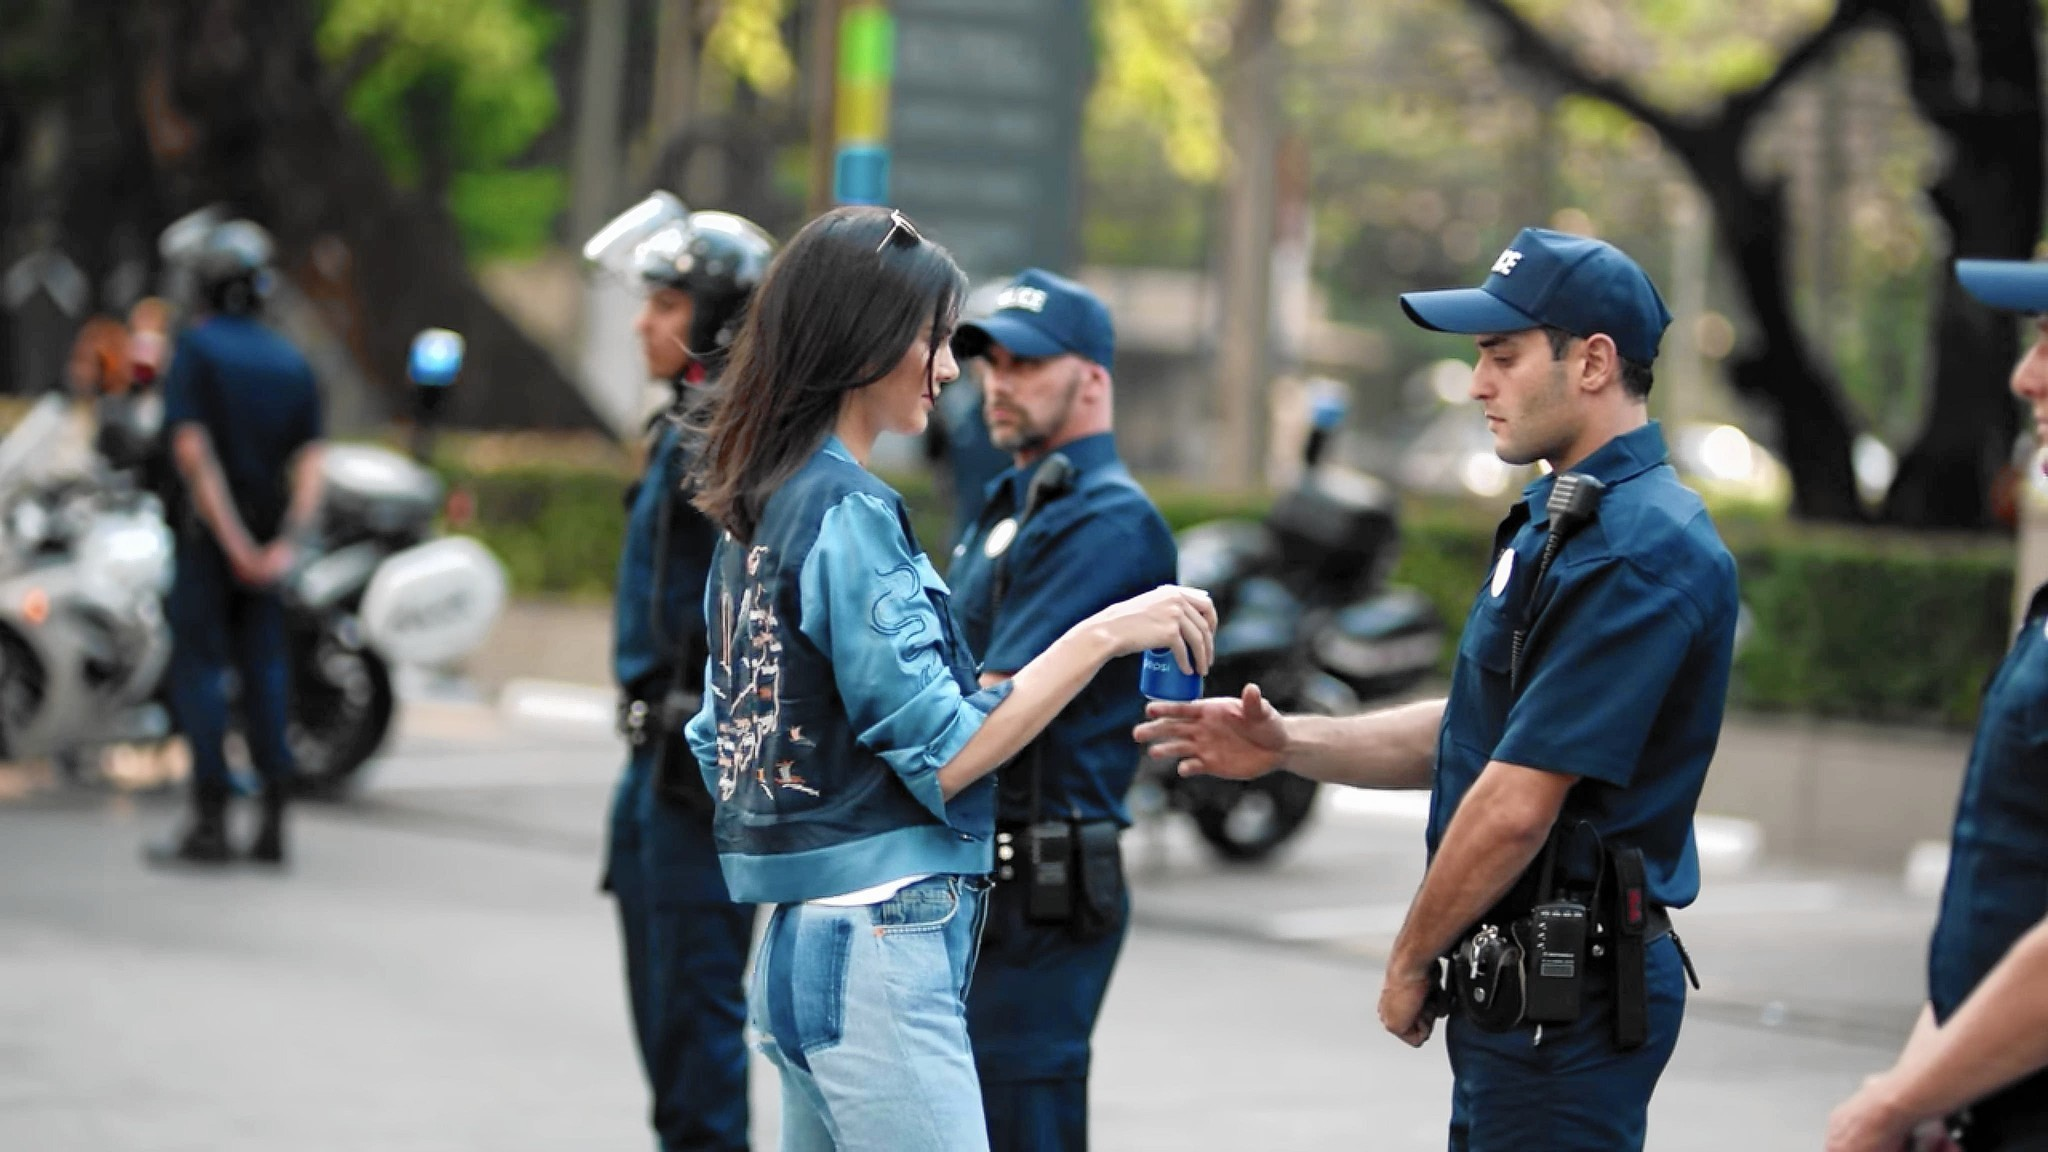 9b0cb00dfb3 Kendall Jenner cries over Pepsi ad backlash in  Keeping Up With the  Kardashians  premiere - Chicago Tribune